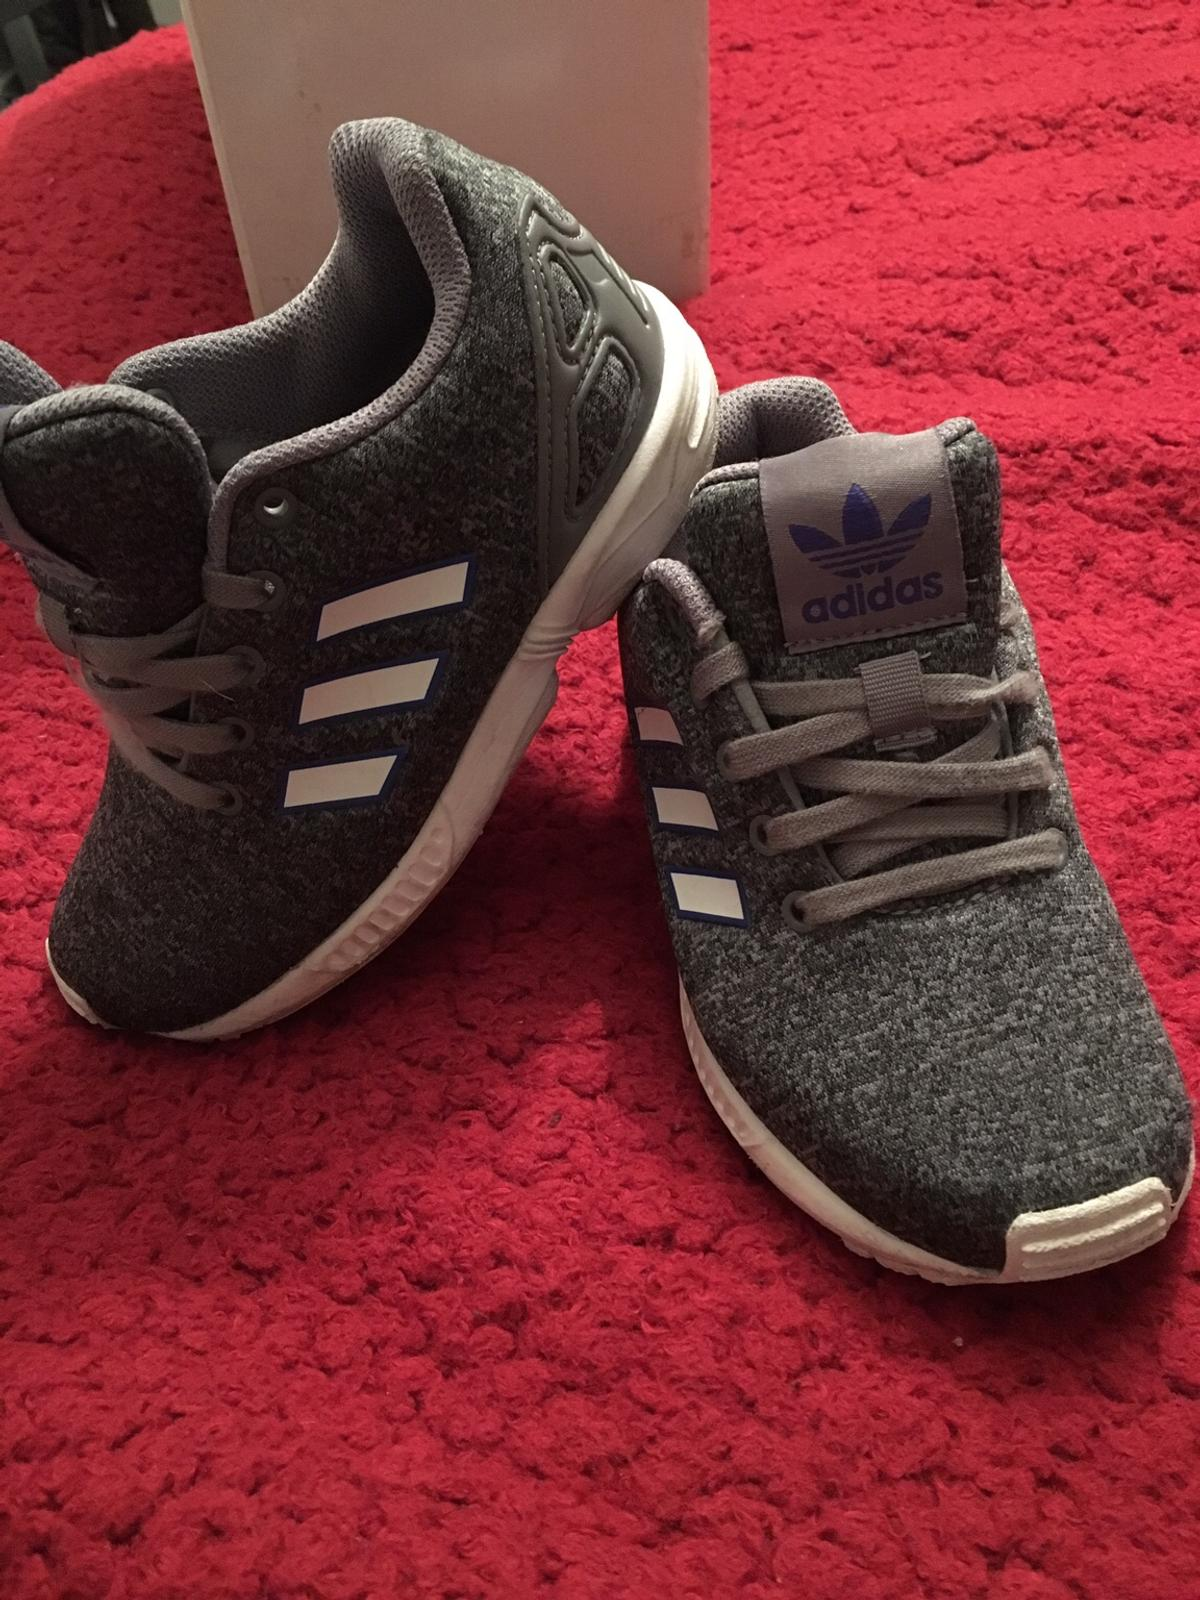 ec2dcaab1 Adidas torsion kids trainers size 10 in Hurlford for £10.00 for sale ...